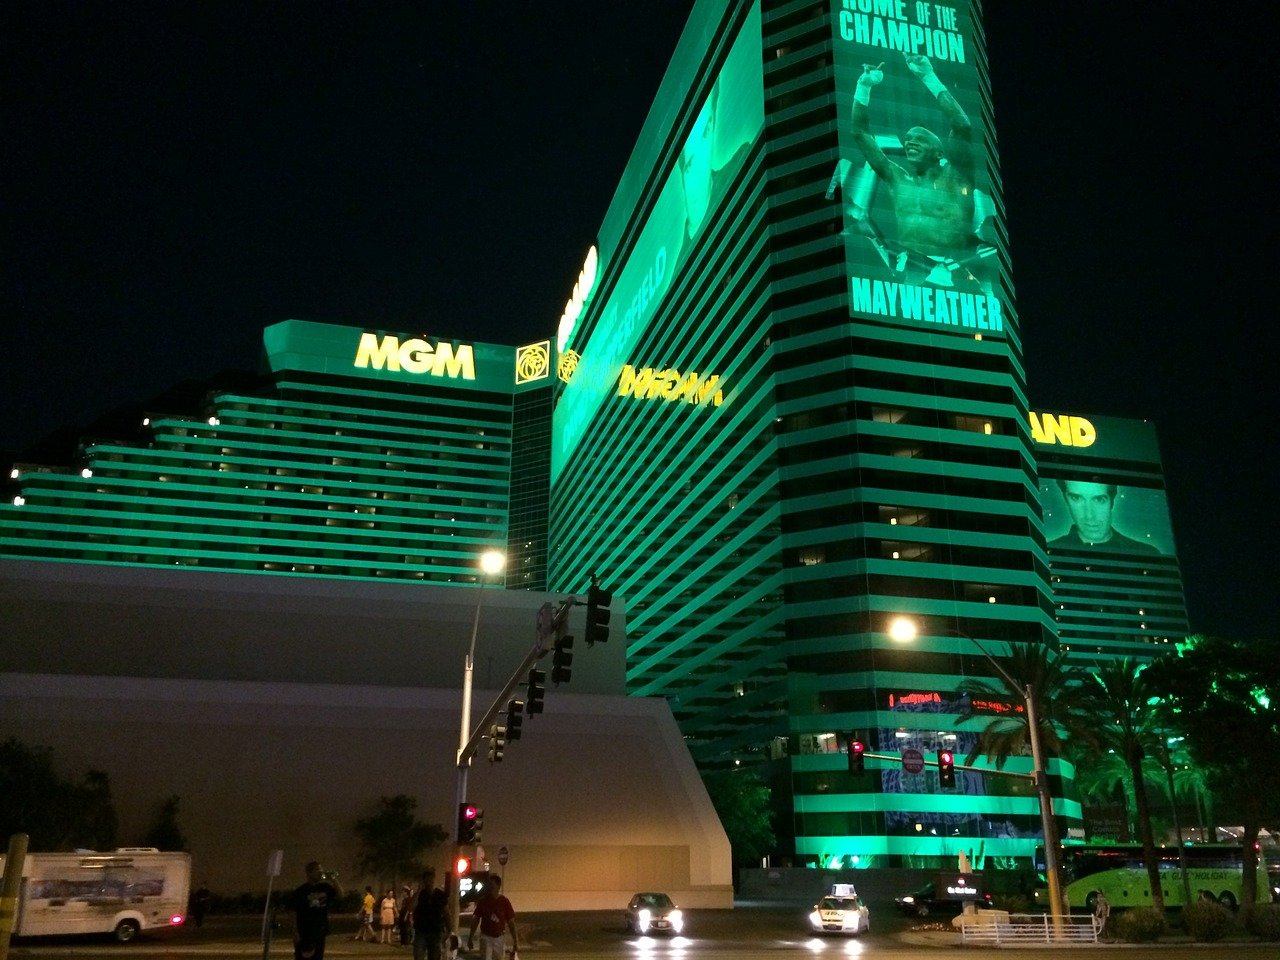 One Year After the Las Vegas Shooting, MGM Is in an Ongoing Legal Dispute With Shooting Victims